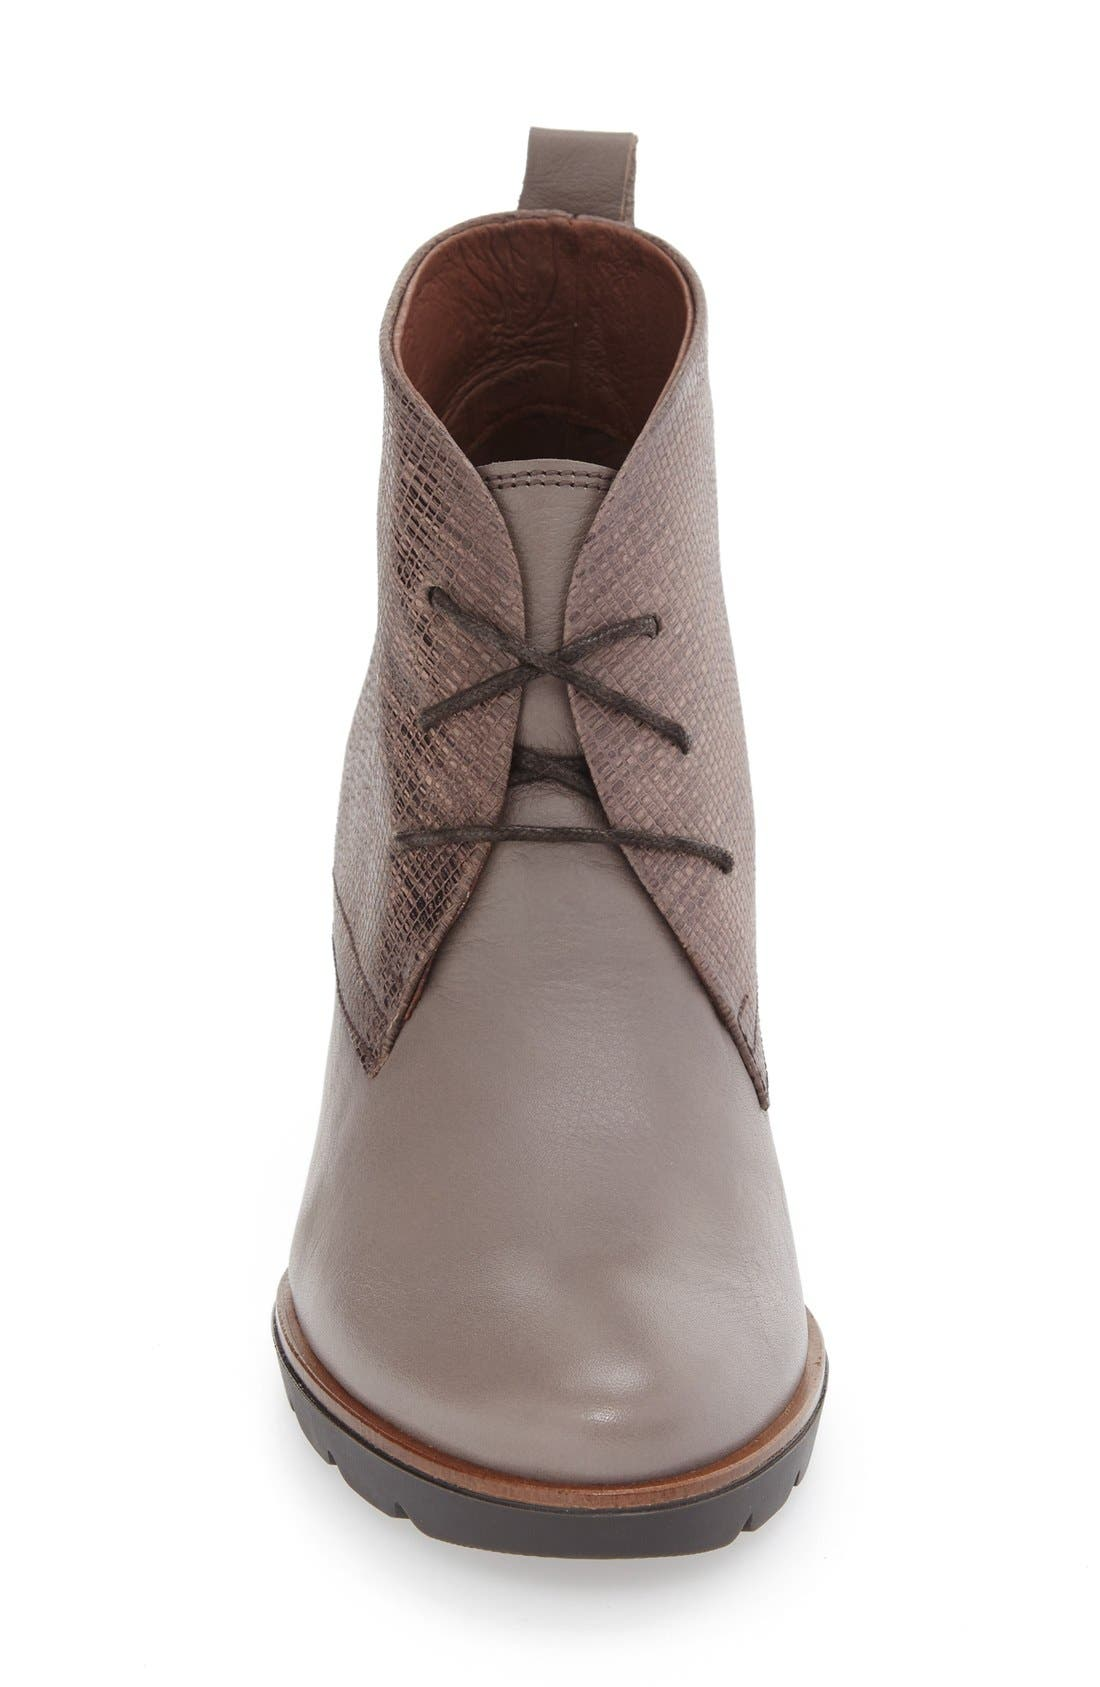 Alternate Image 3  - Hispanitas 'Harmonie' Lace-Up Wedge Bootie (Women)